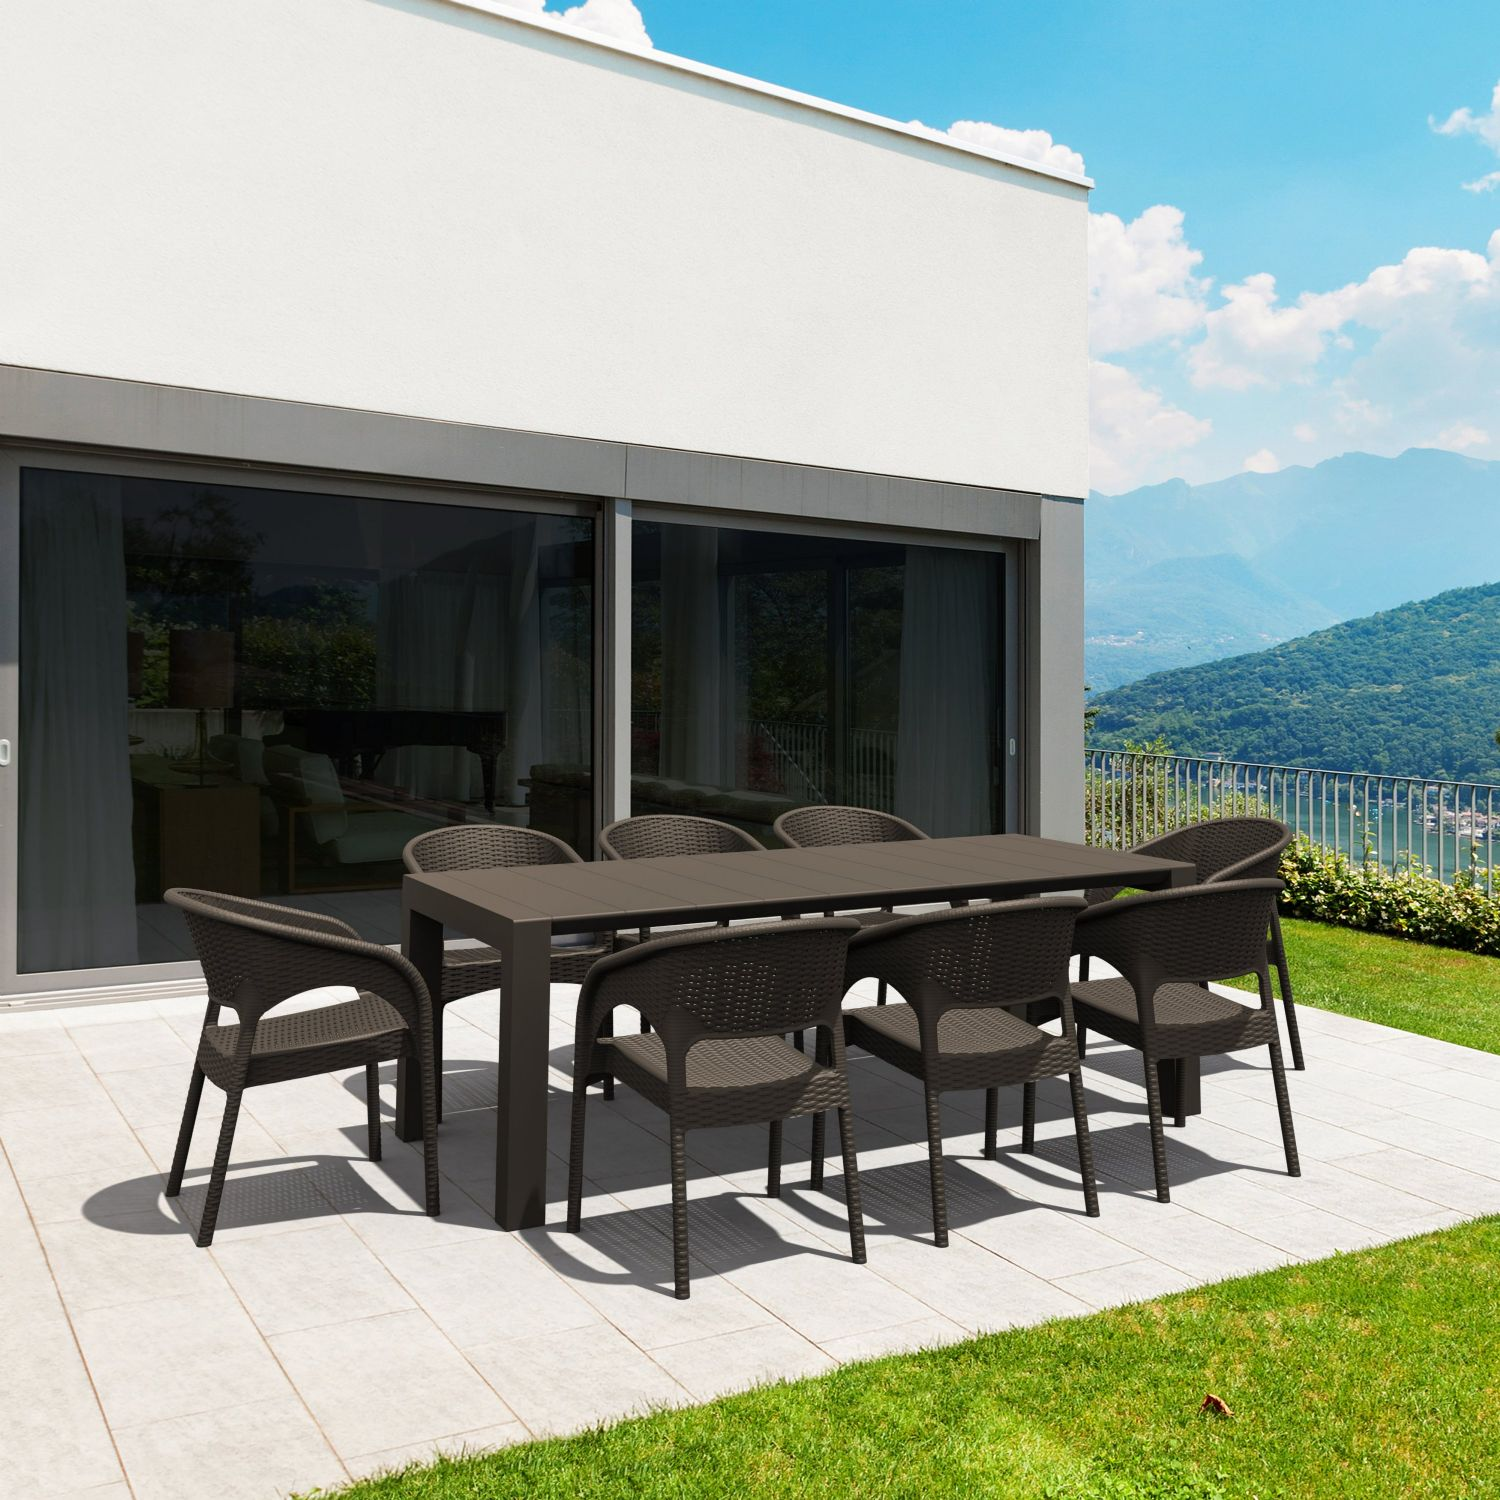 Vegas Outdoor Dining Table Extendable from 70 to 86 inch Dark Gray ISP774-DG - 3